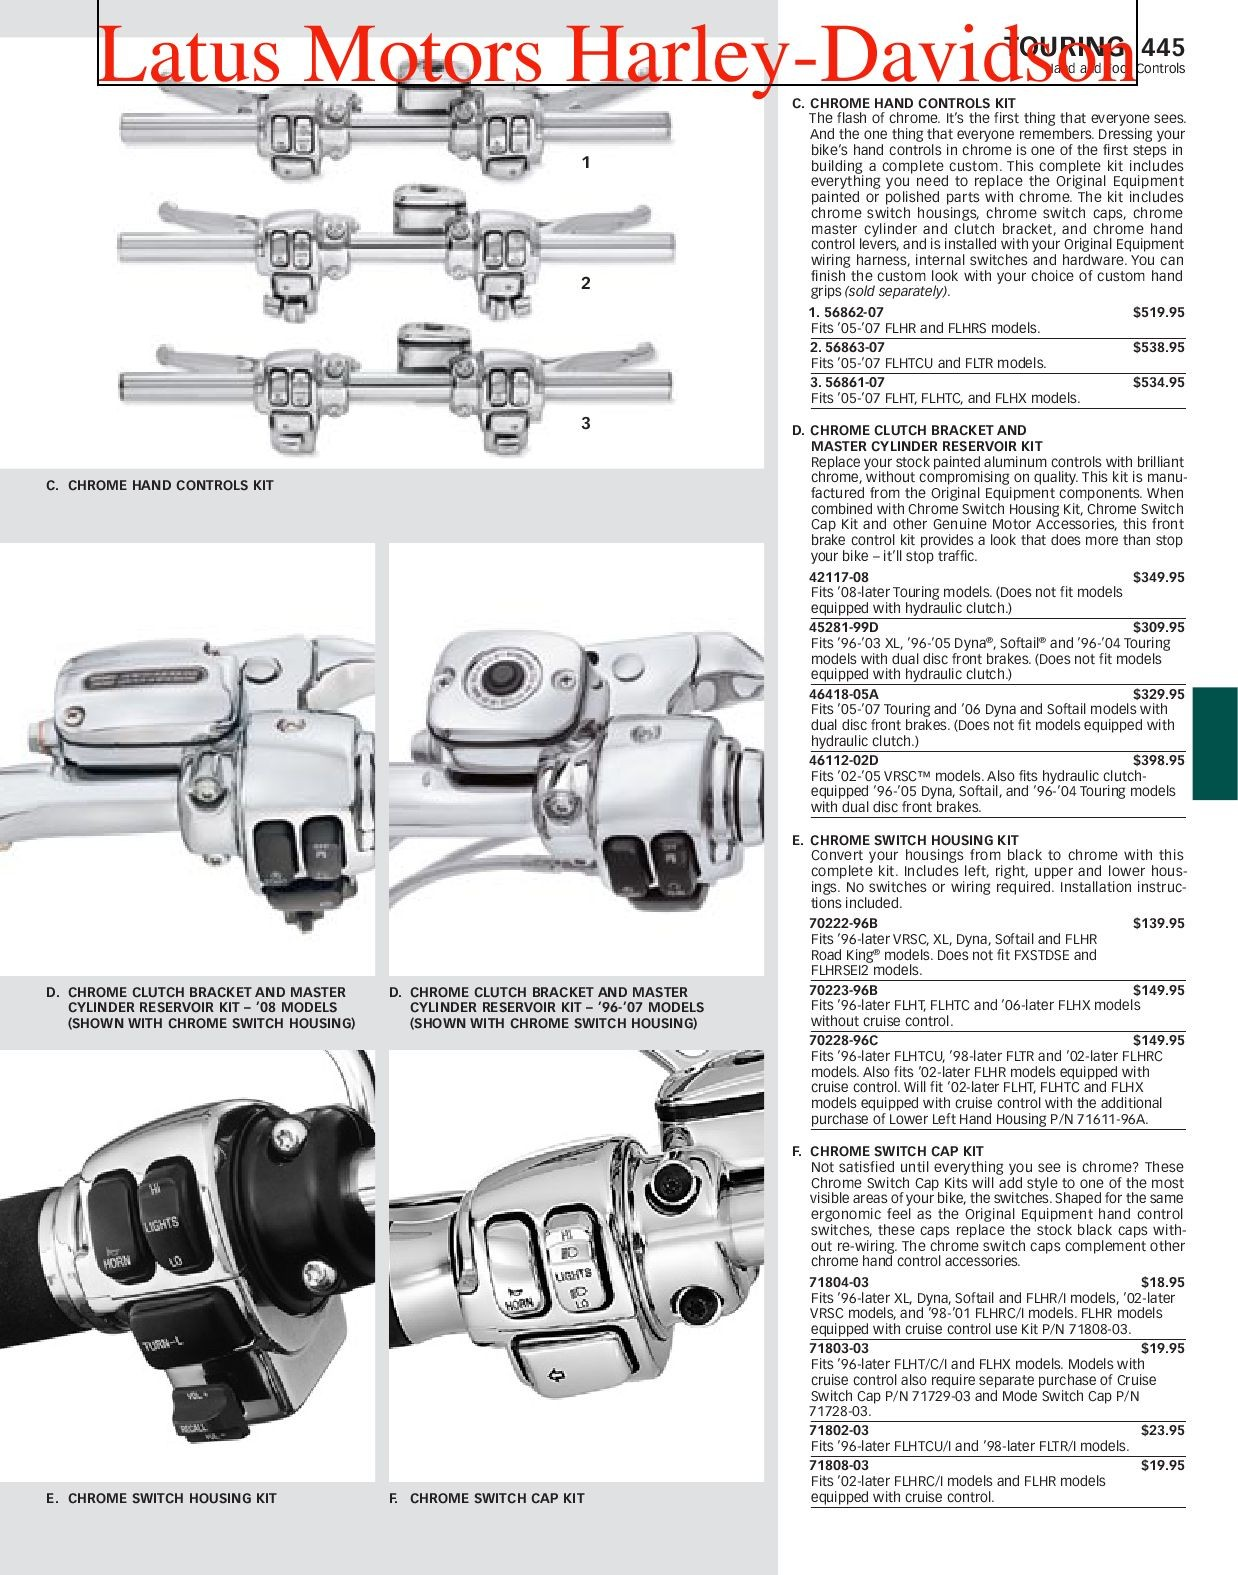 Harley Engine Parts Diagram Part 2 Harley Davidson Parts and Accessories Catalog by Harley Of Harley Engine Parts Diagram